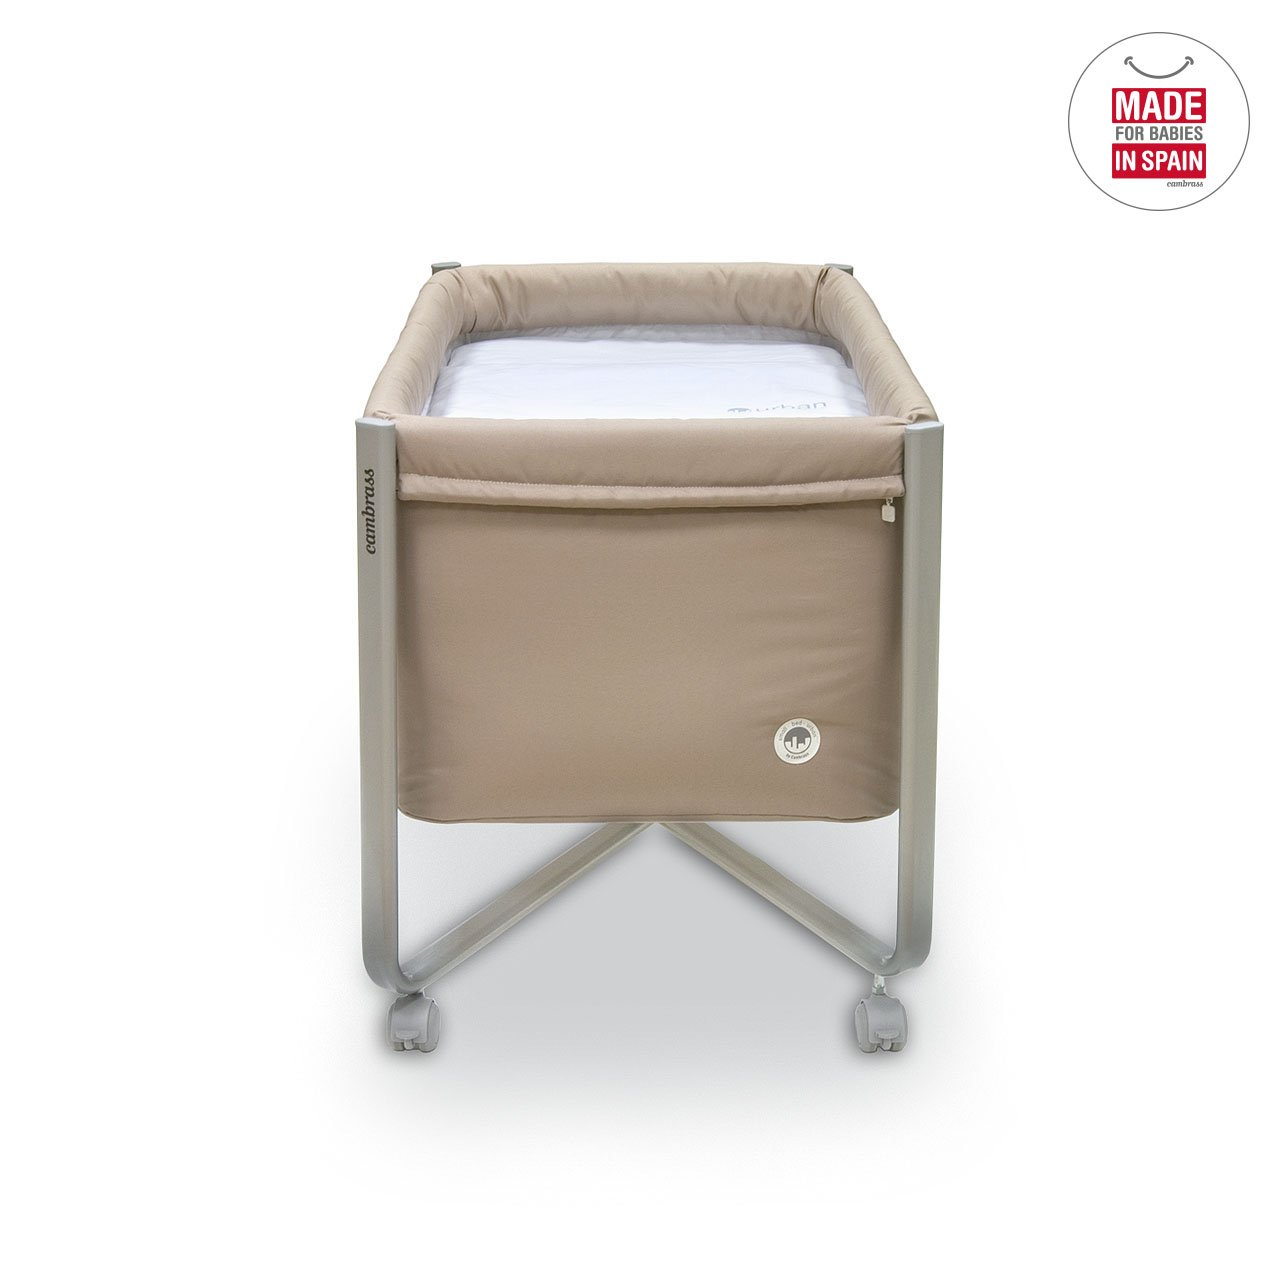 Amazon.com : Cambrass 56.5 x 92 x 64.5 cm Bed Urban Liso E (Small, Beige/ Grey) : Baby